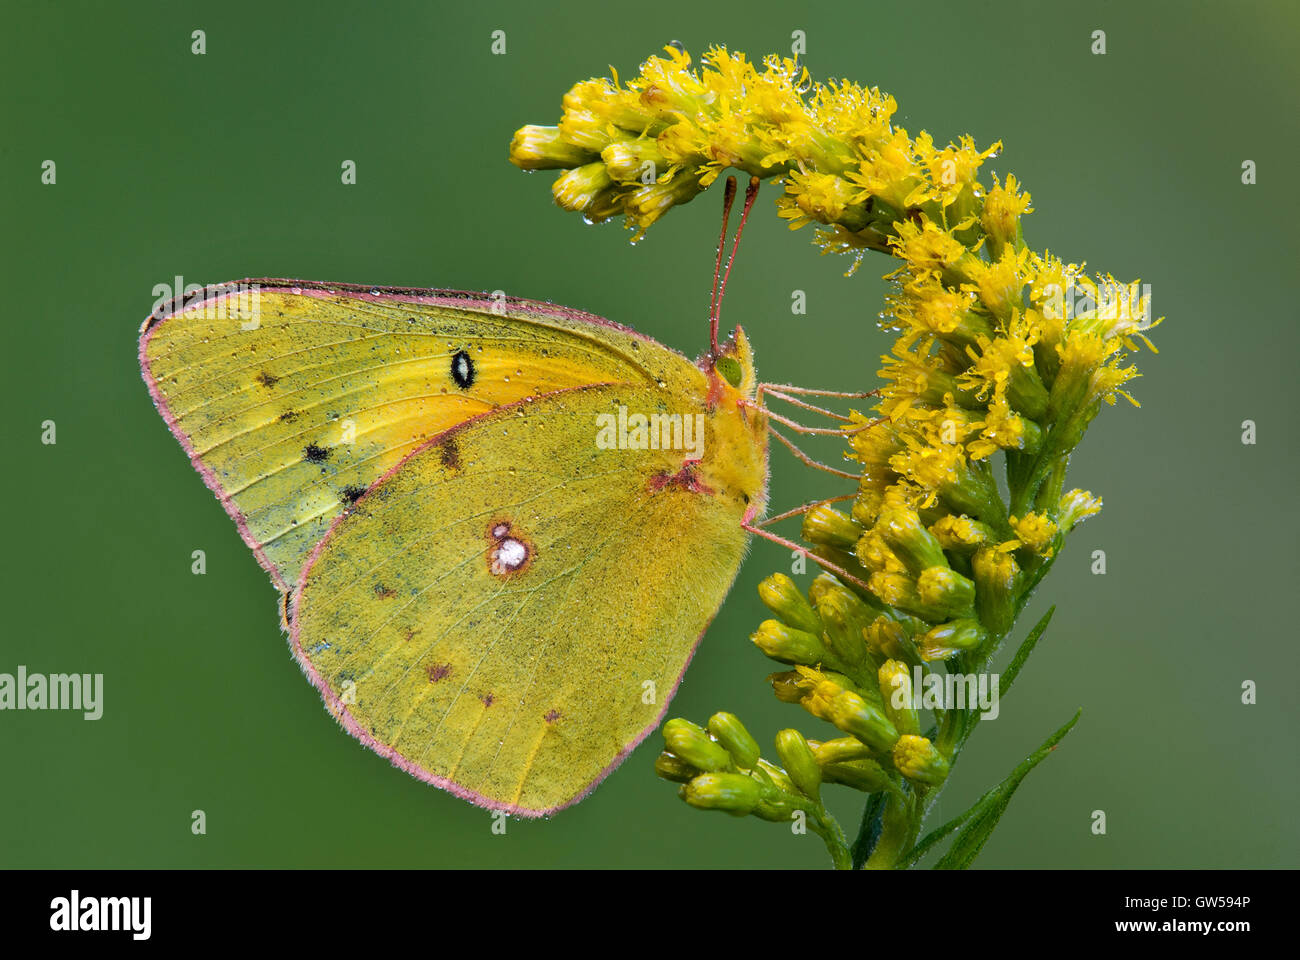 Clouded Sulphur Butterfly Colias philodice feeding on Goldenrod (Solidago species) flowers, Michigan USA - Stock Image